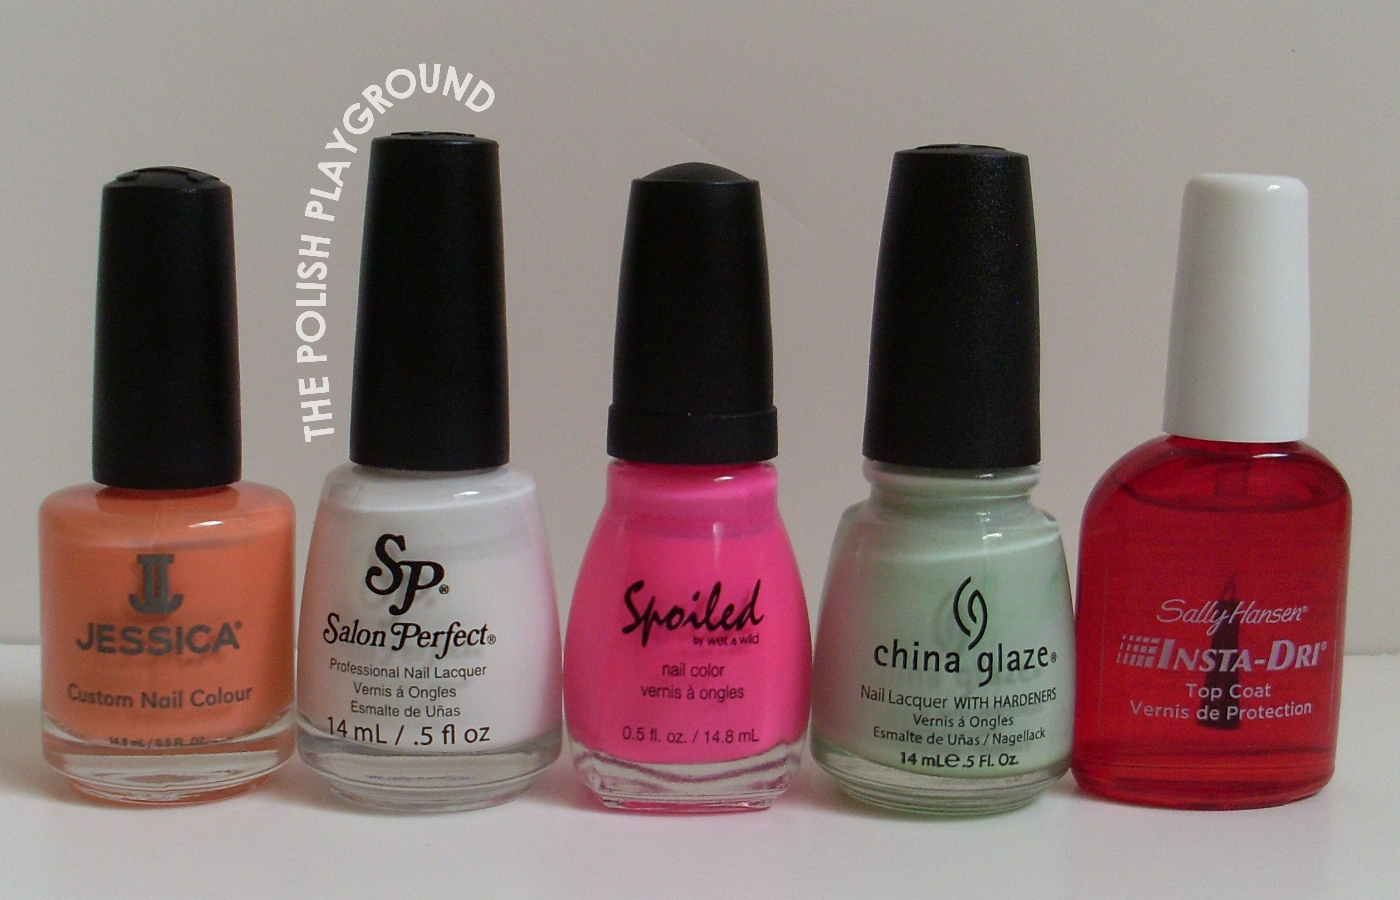 Jessica, Salon Perfect, Spoiled by Wet n' Wild, China Glaze, Sally Hansen